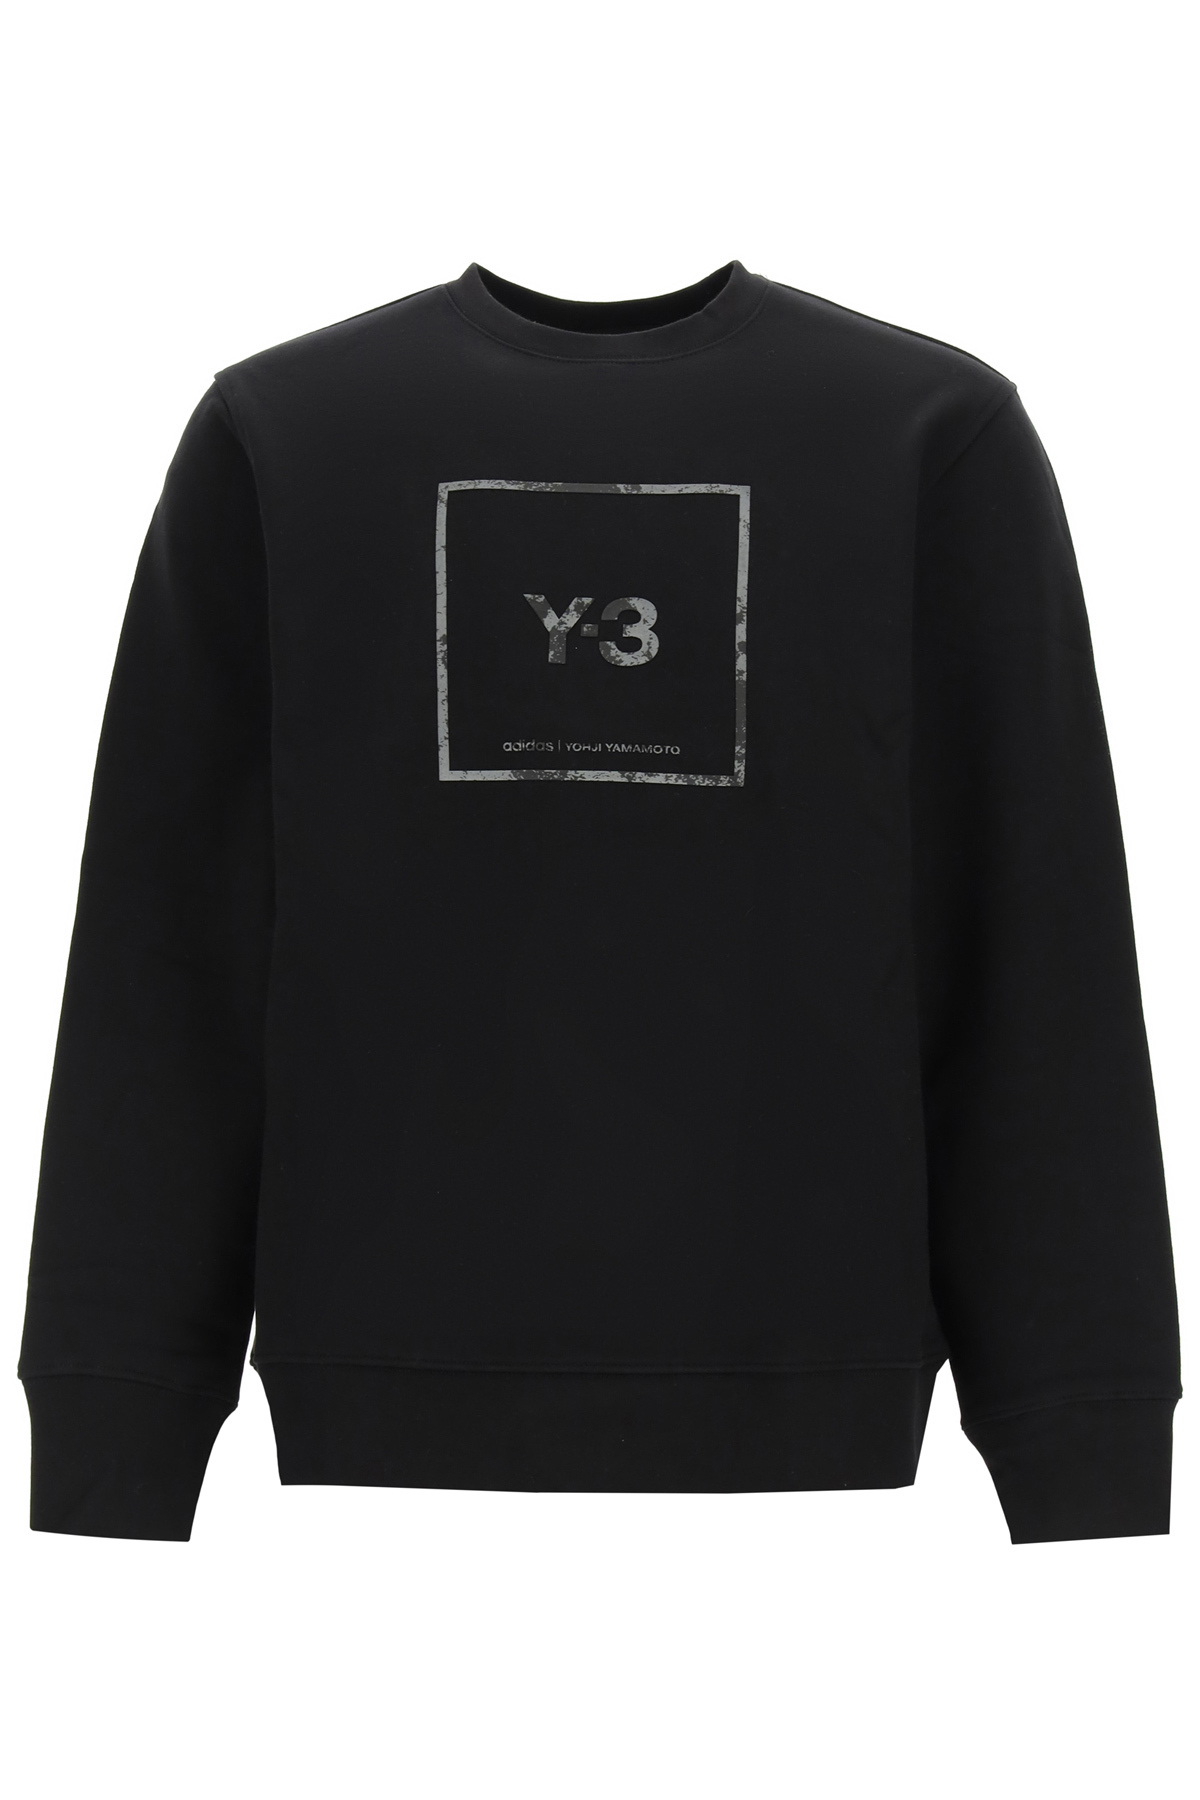 Y-3 U SQUARE LABEL CREWNECK SWEATSHIRT